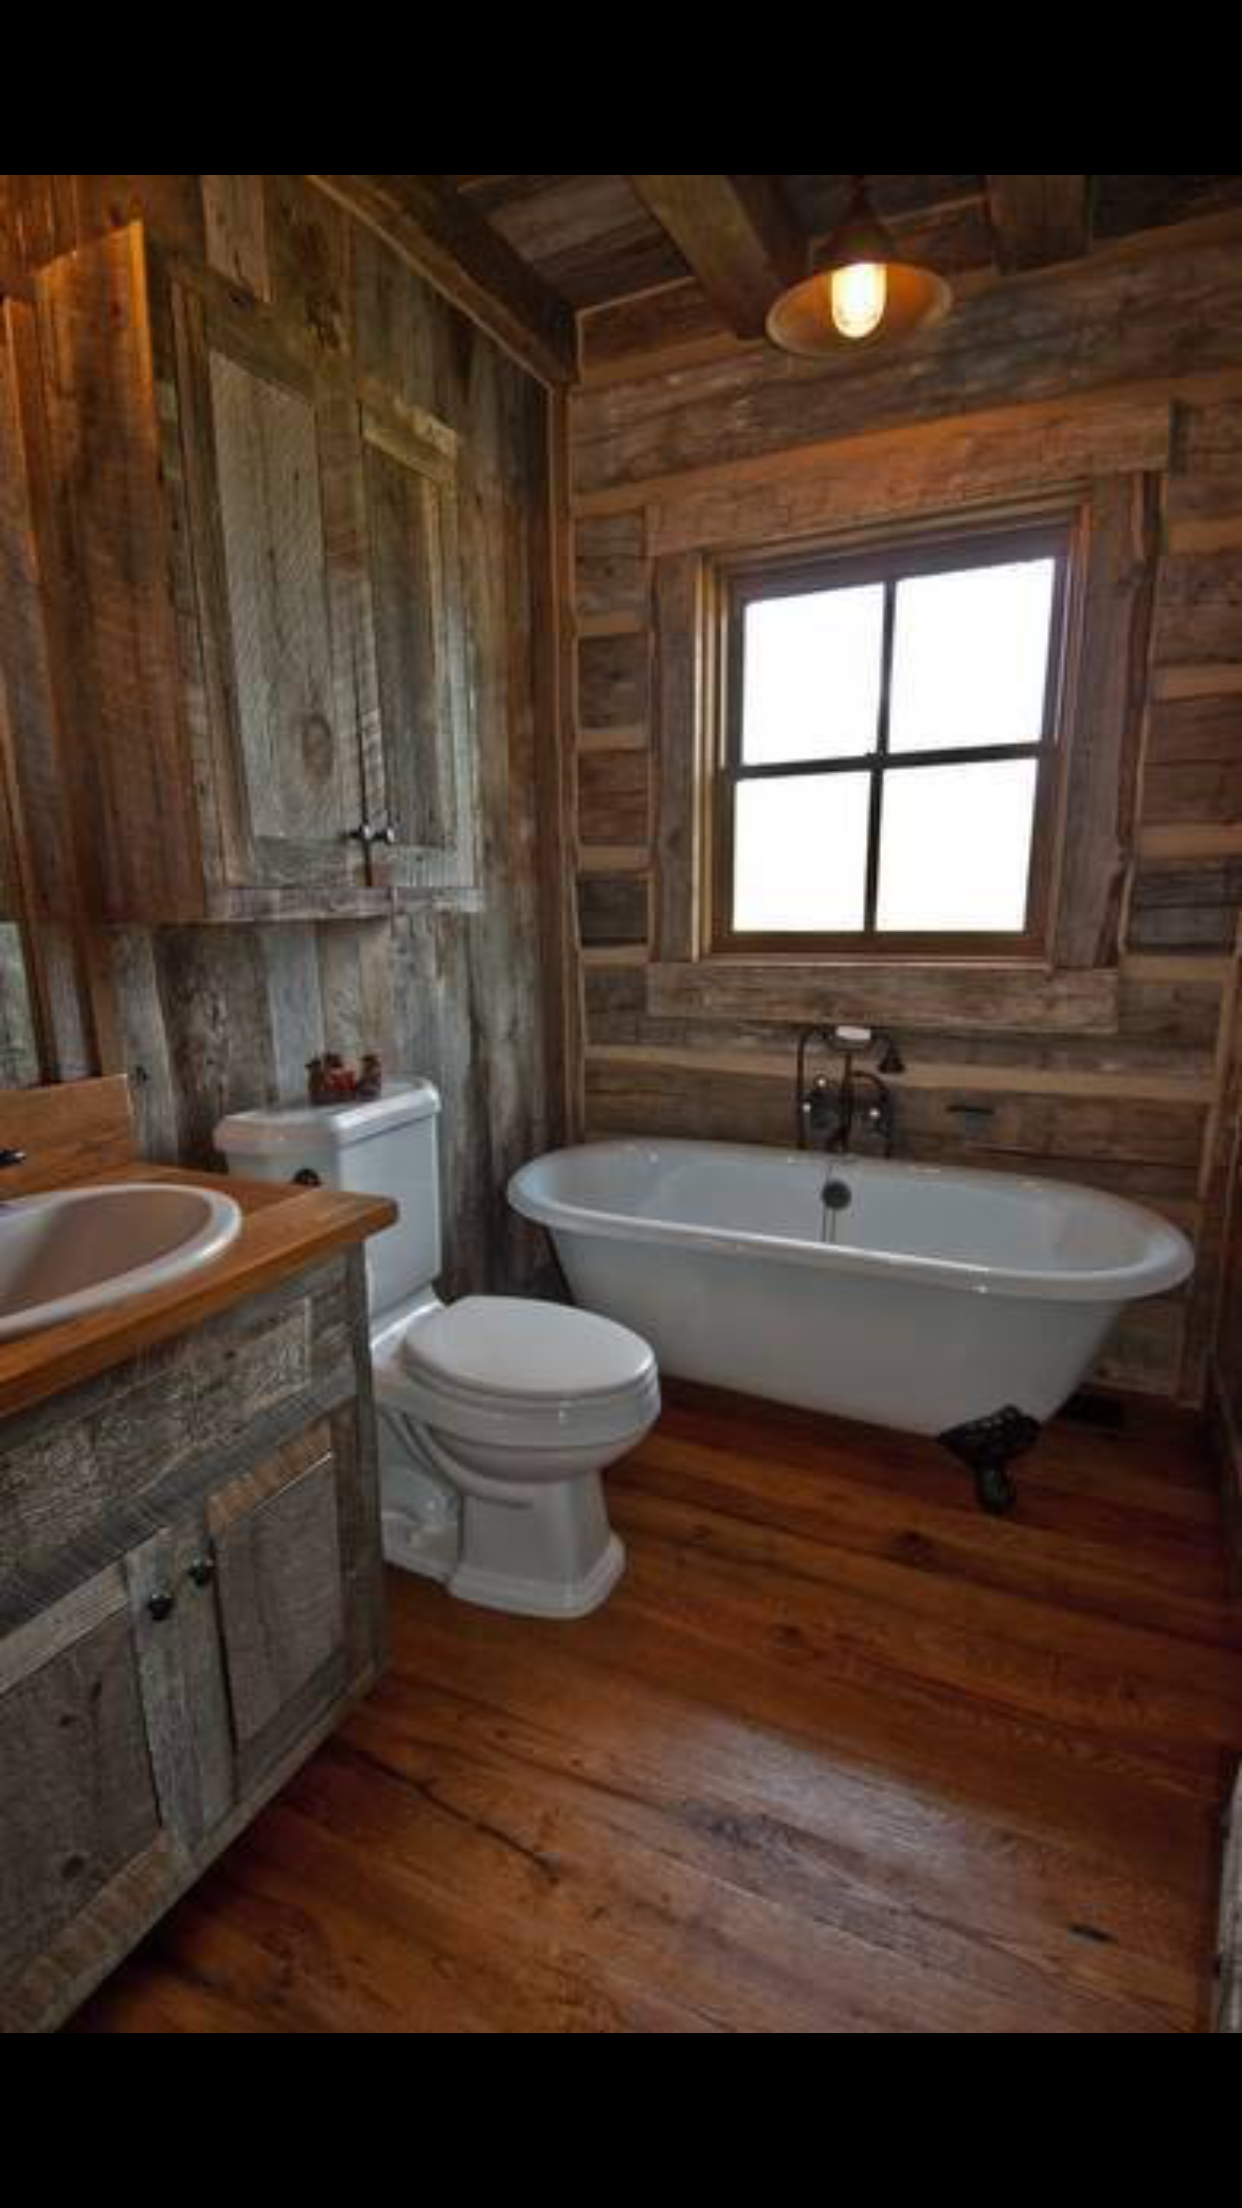 western bathroom designs. 46 Bathroom Interior Designs Made In Rustic Barns Western G